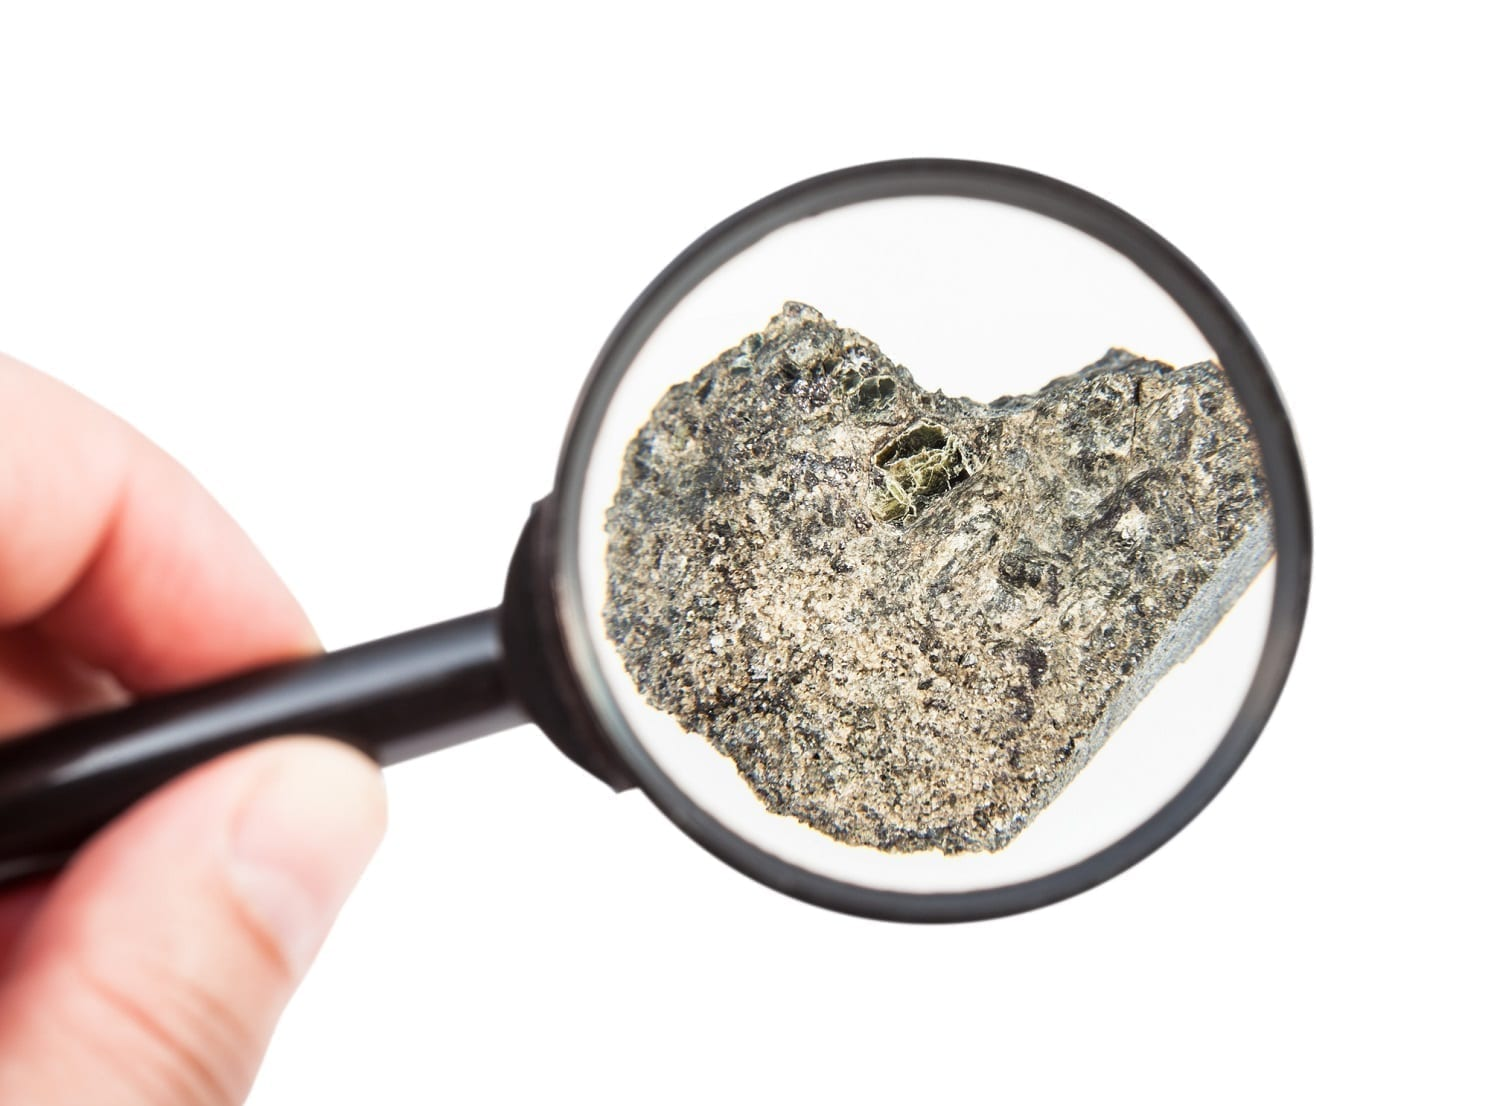 Rock sample under a magnifying glass: ID 105508360 © Vvoevale | Dreamstime.com